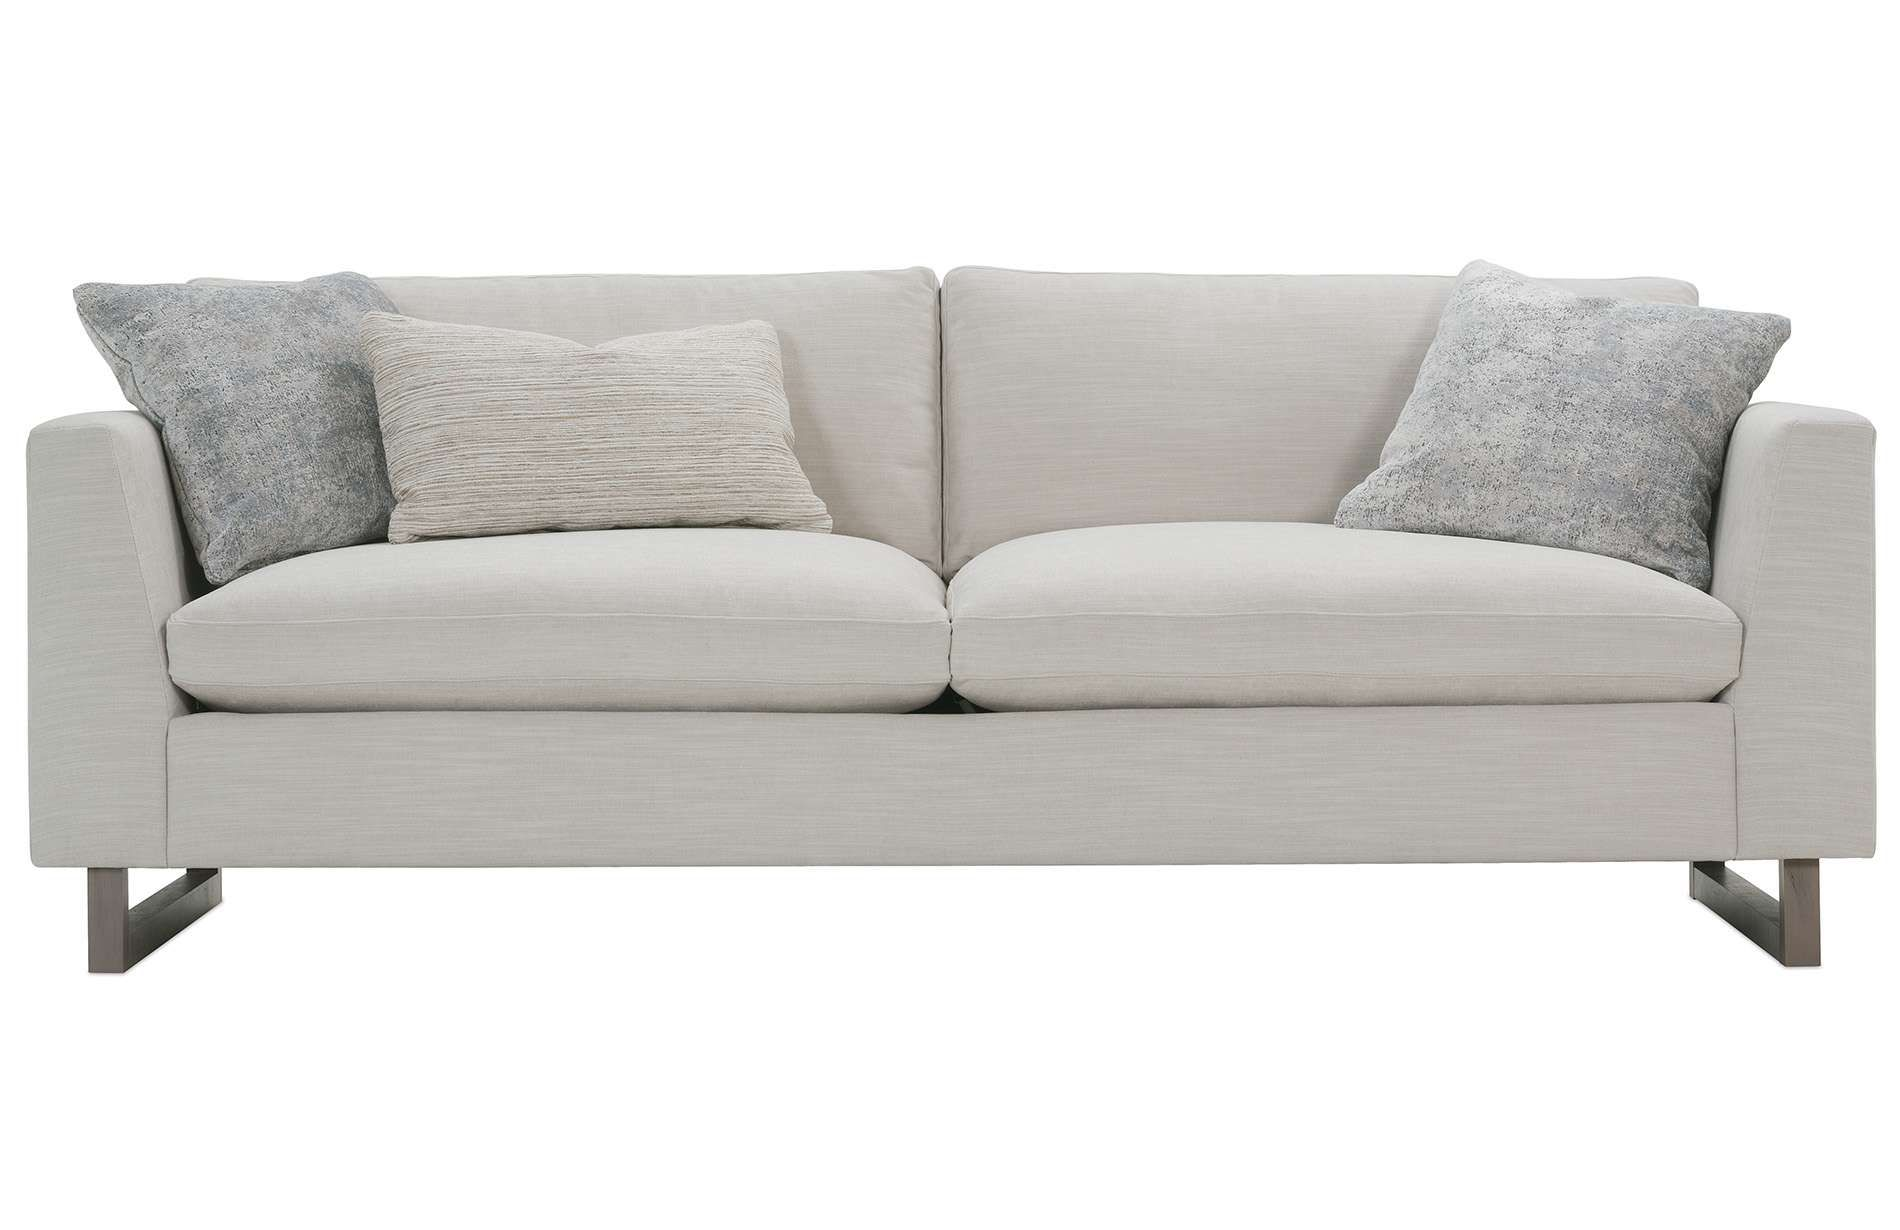 The Darcy 2 Cushion Sofa is designed for those that yearn ...